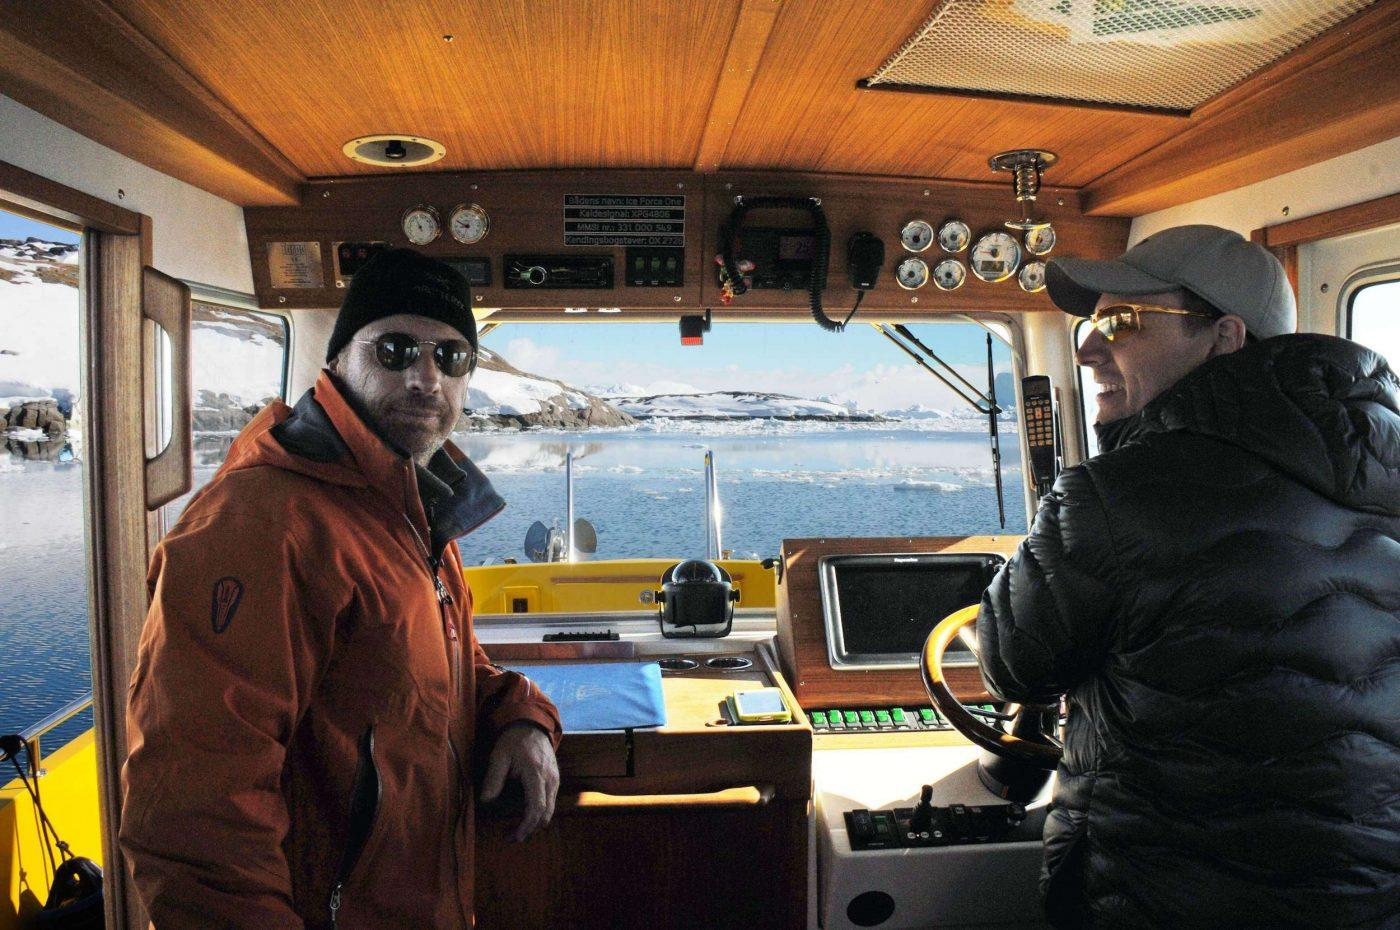 Inside Nuuk Water Taxi. Photo by Nuuk Water Taxi